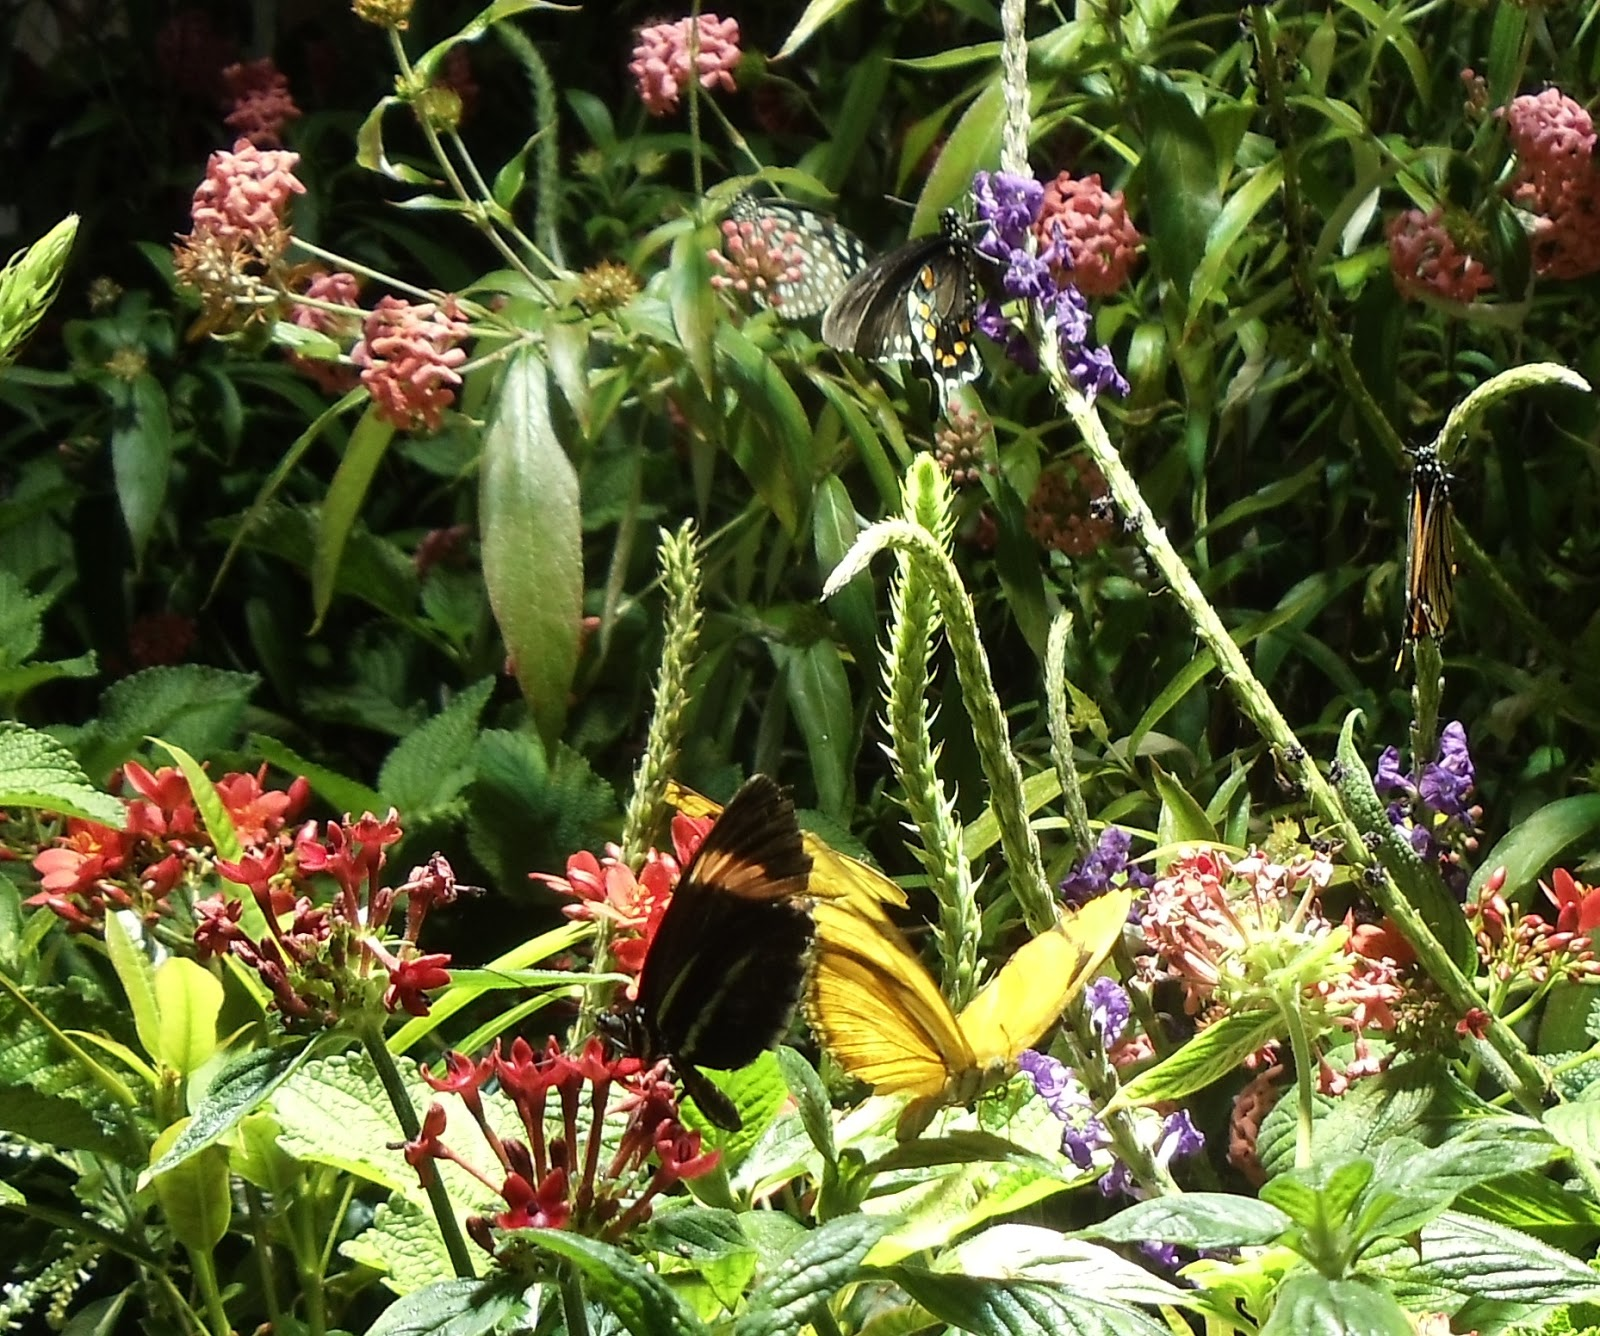 Butterflies landing on flowers